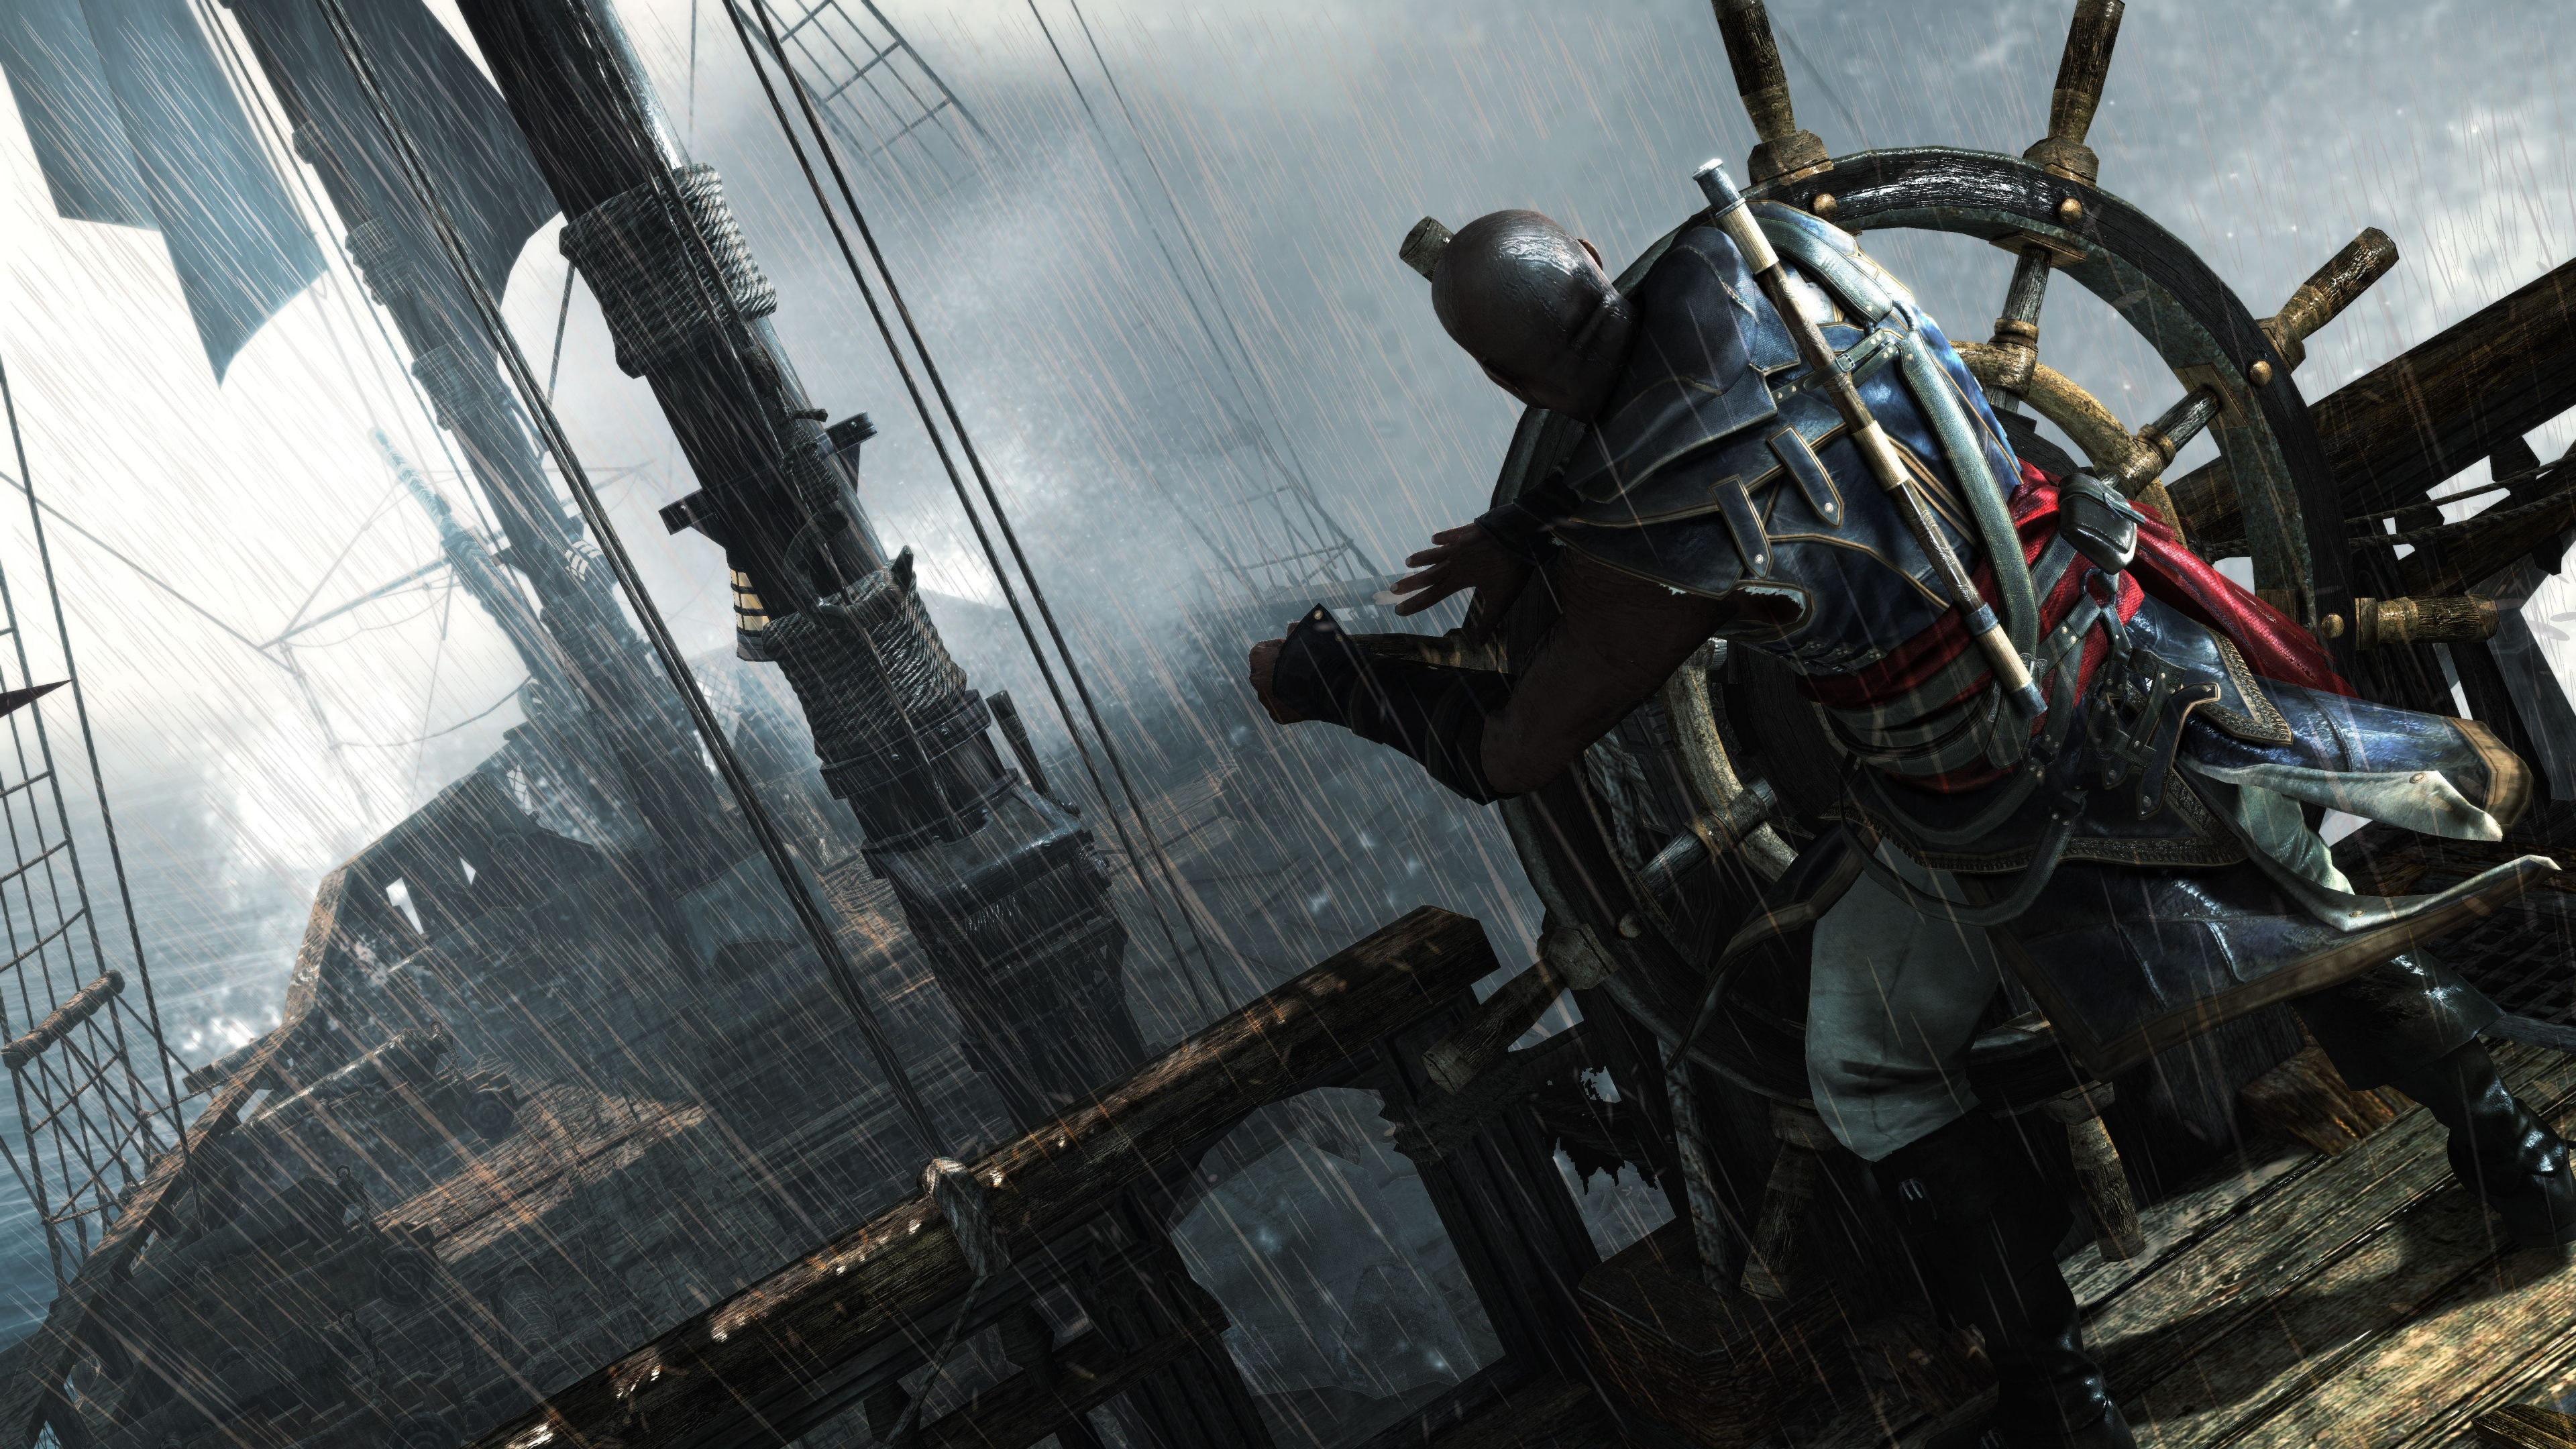 assassins_creed_iv_black_flag_assassins_creed_iv_ship_steering_wheel_storm_92949_3840x2160.jpg